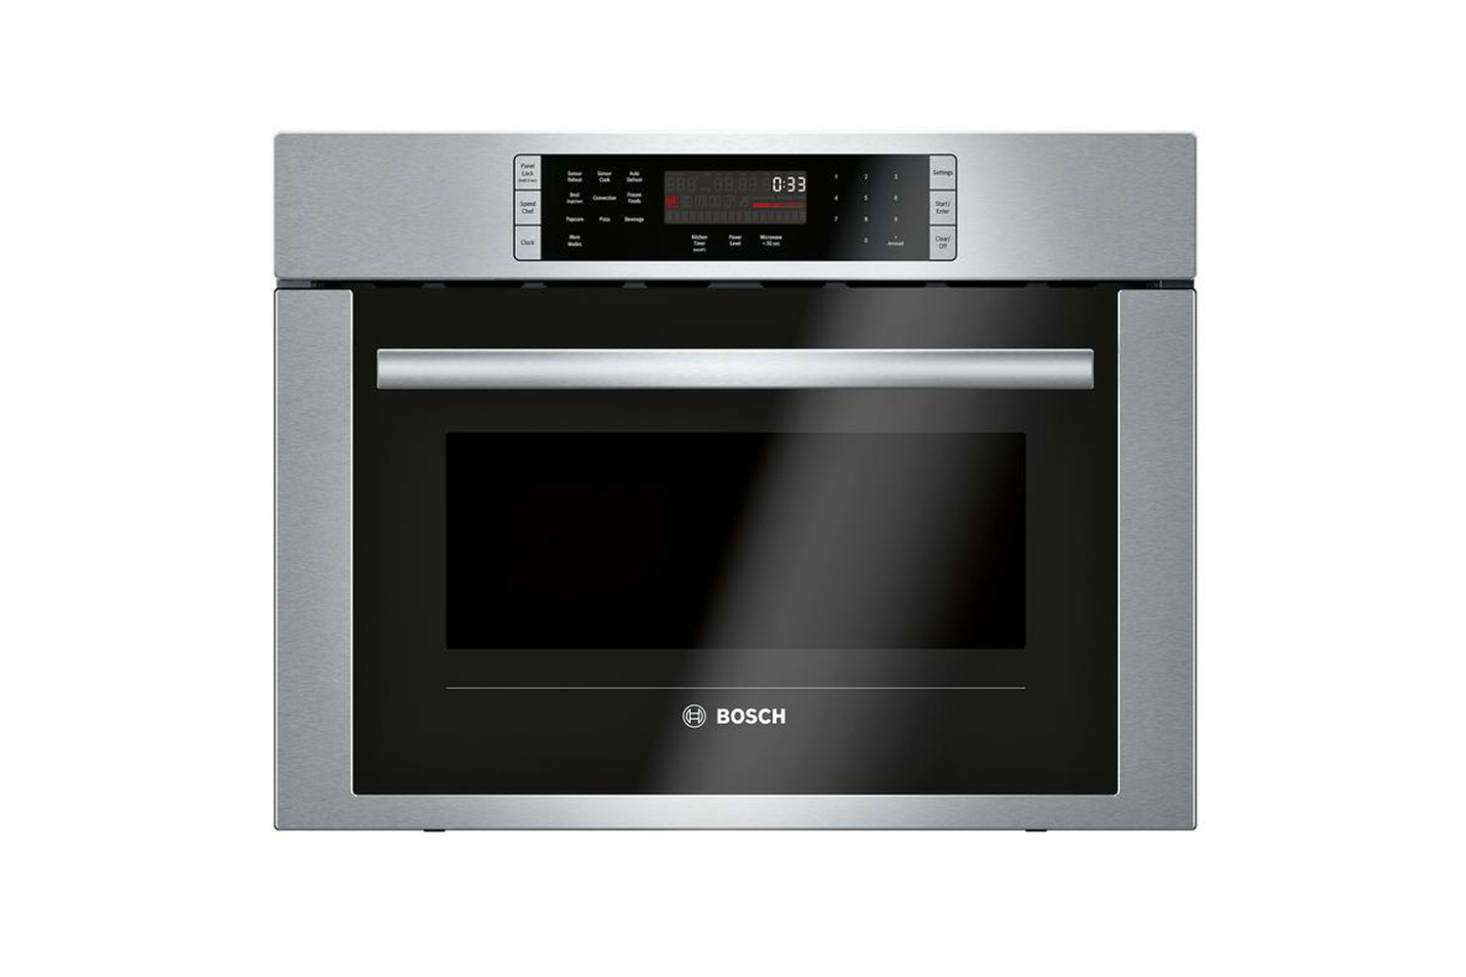 The Bosch 500 Series -Inch Built-in Convection Speed Microwave is $src=